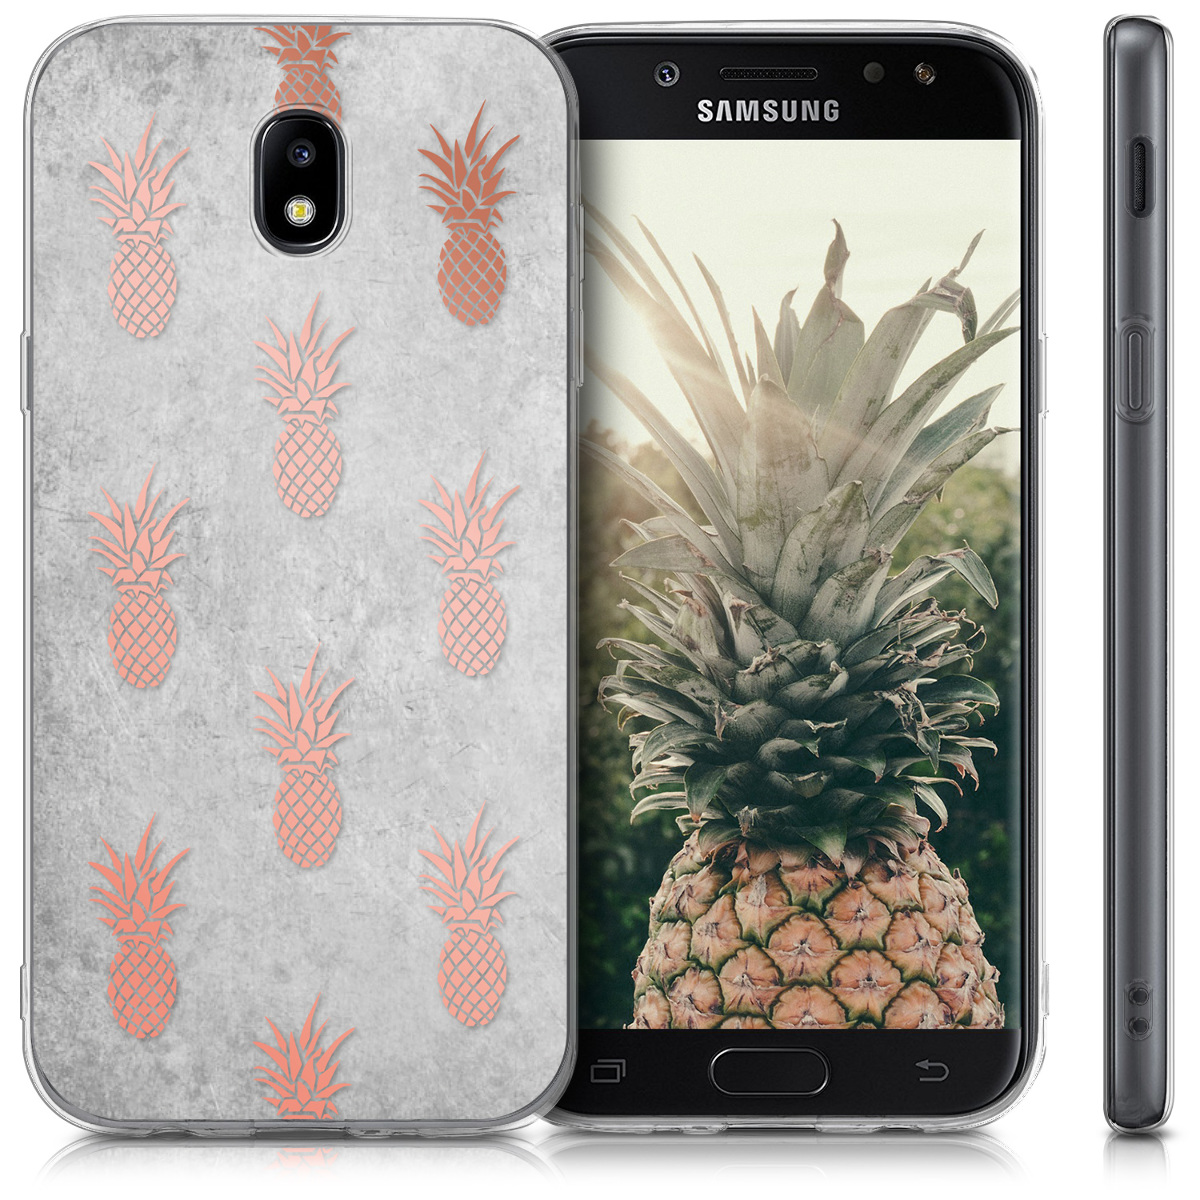 coque pour samsung galaxy j7 2017 duos housse housse silicone protection ebay. Black Bedroom Furniture Sets. Home Design Ideas